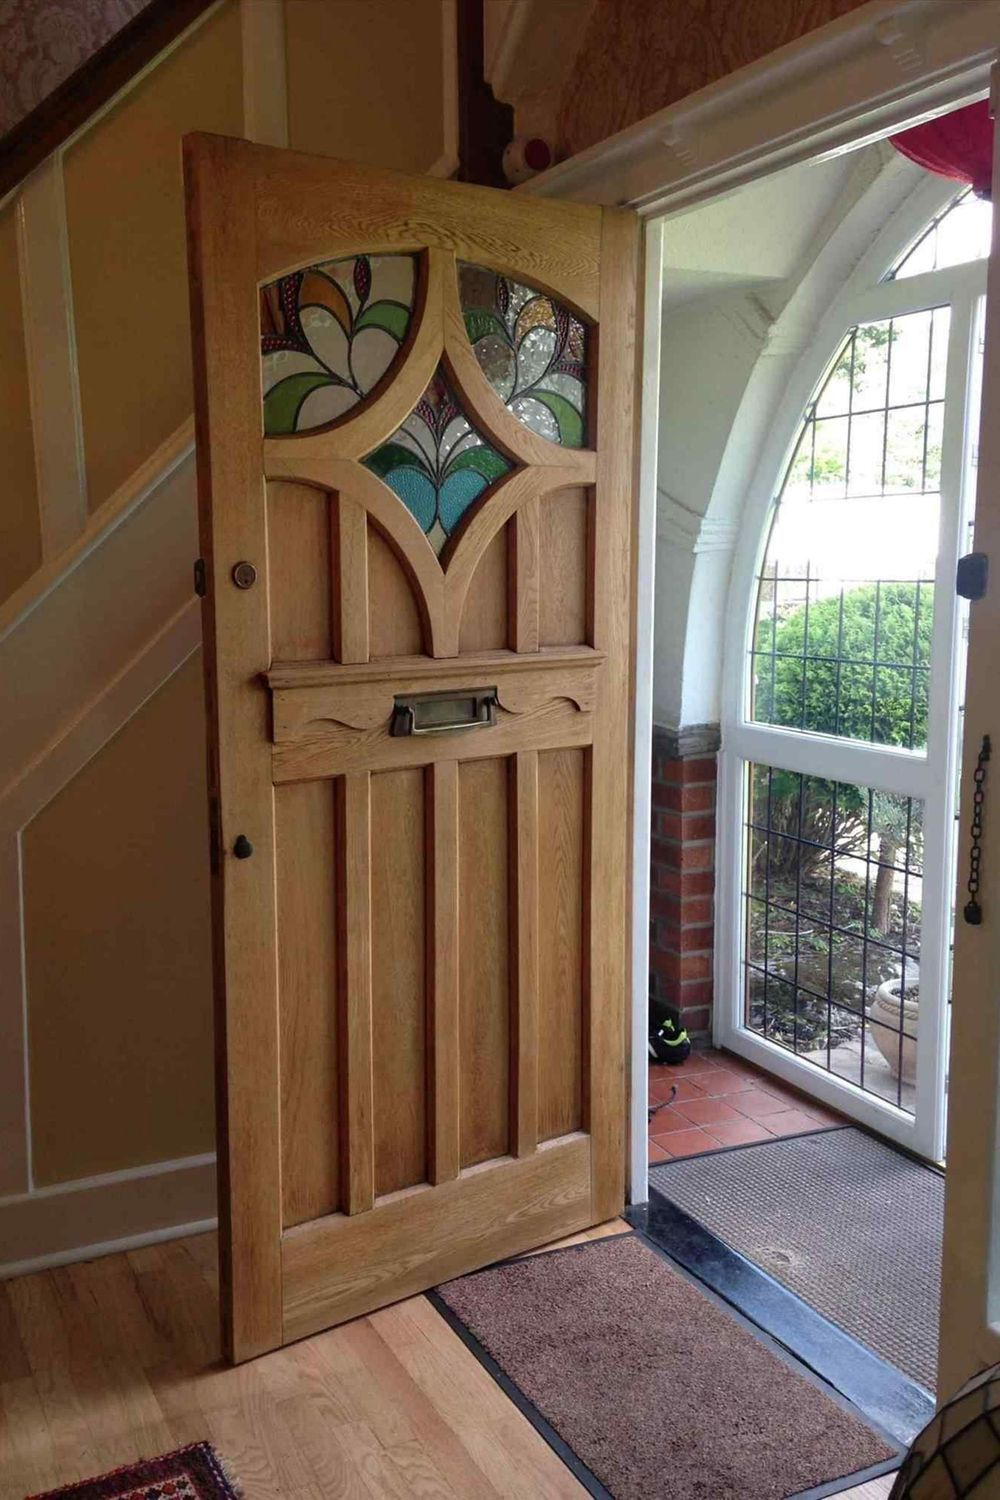 Window Exterior Door Sidelight House Property Hardwood Wooden